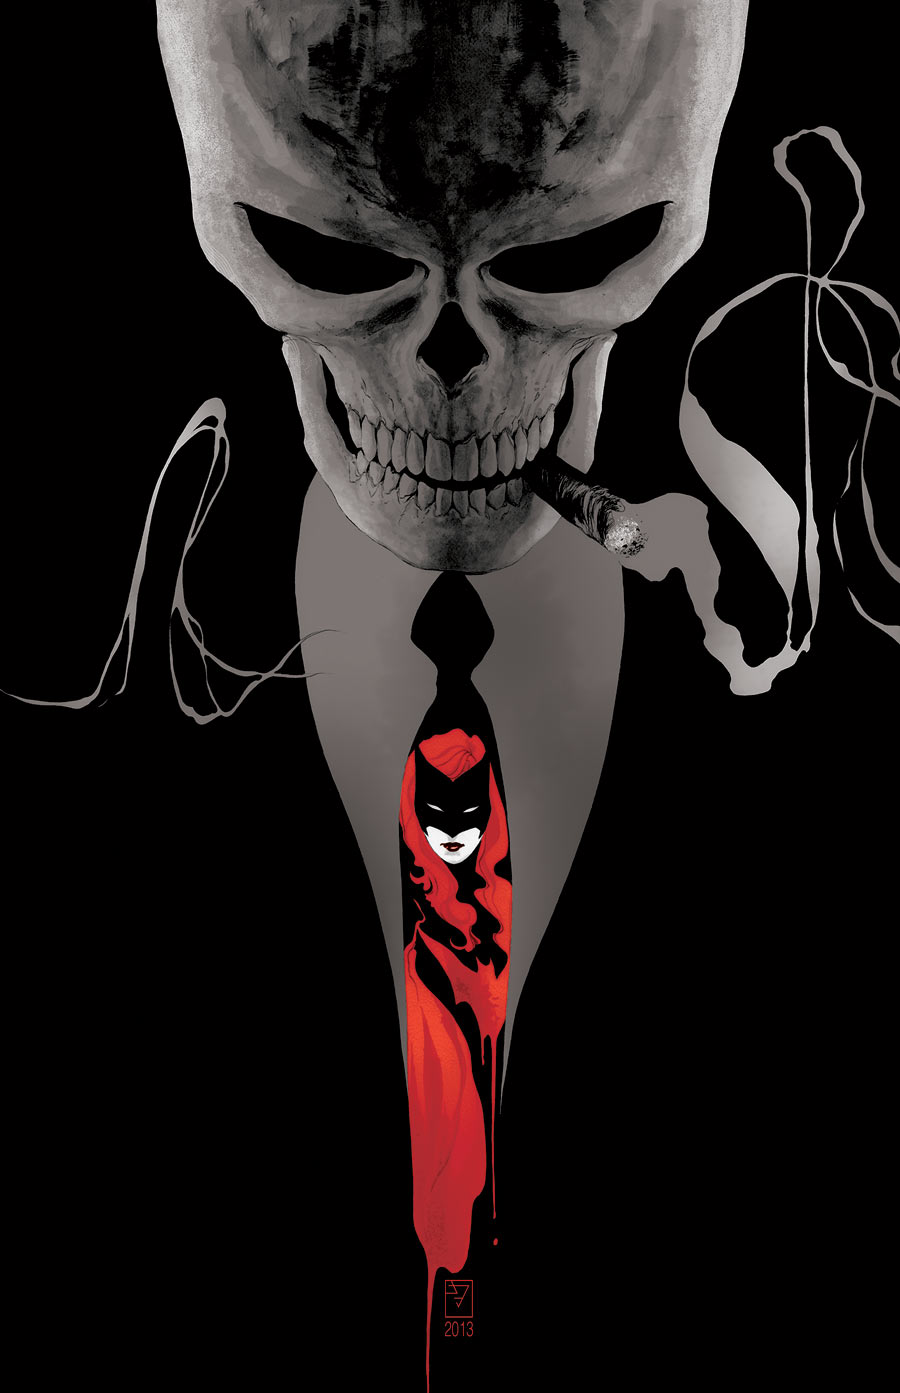 Batwoman Vol 2 25 (Unpublished)